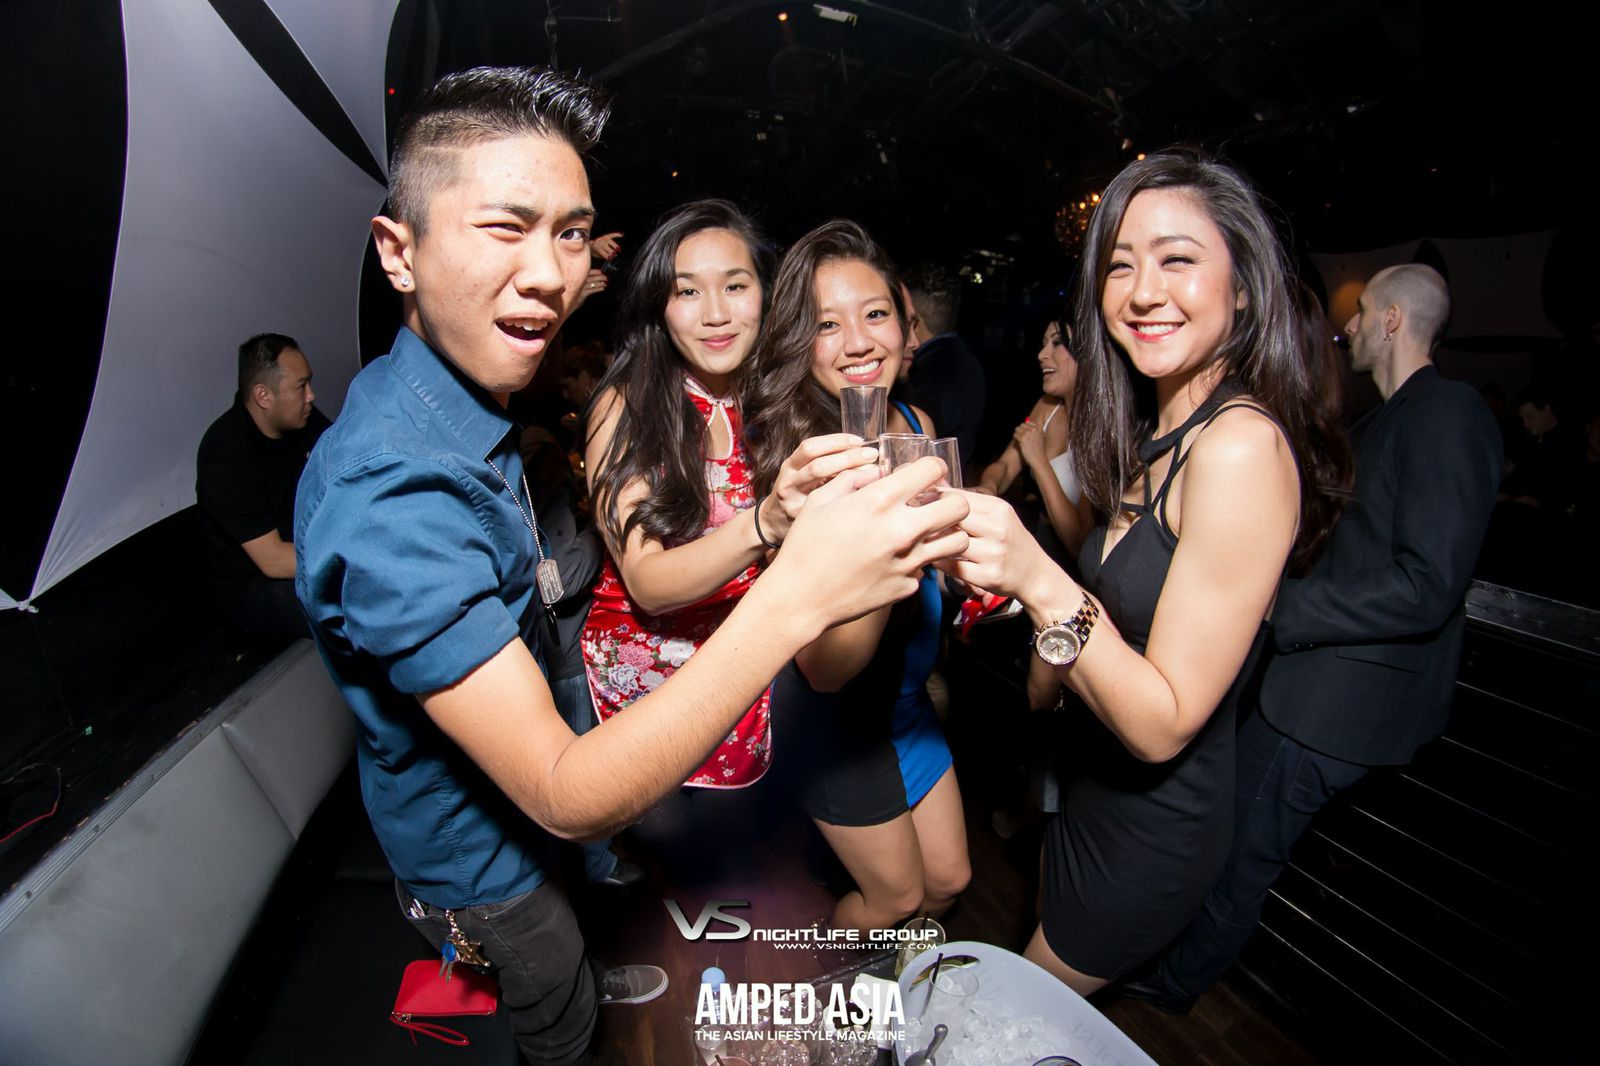 Means Asian clubs in los angeles agree